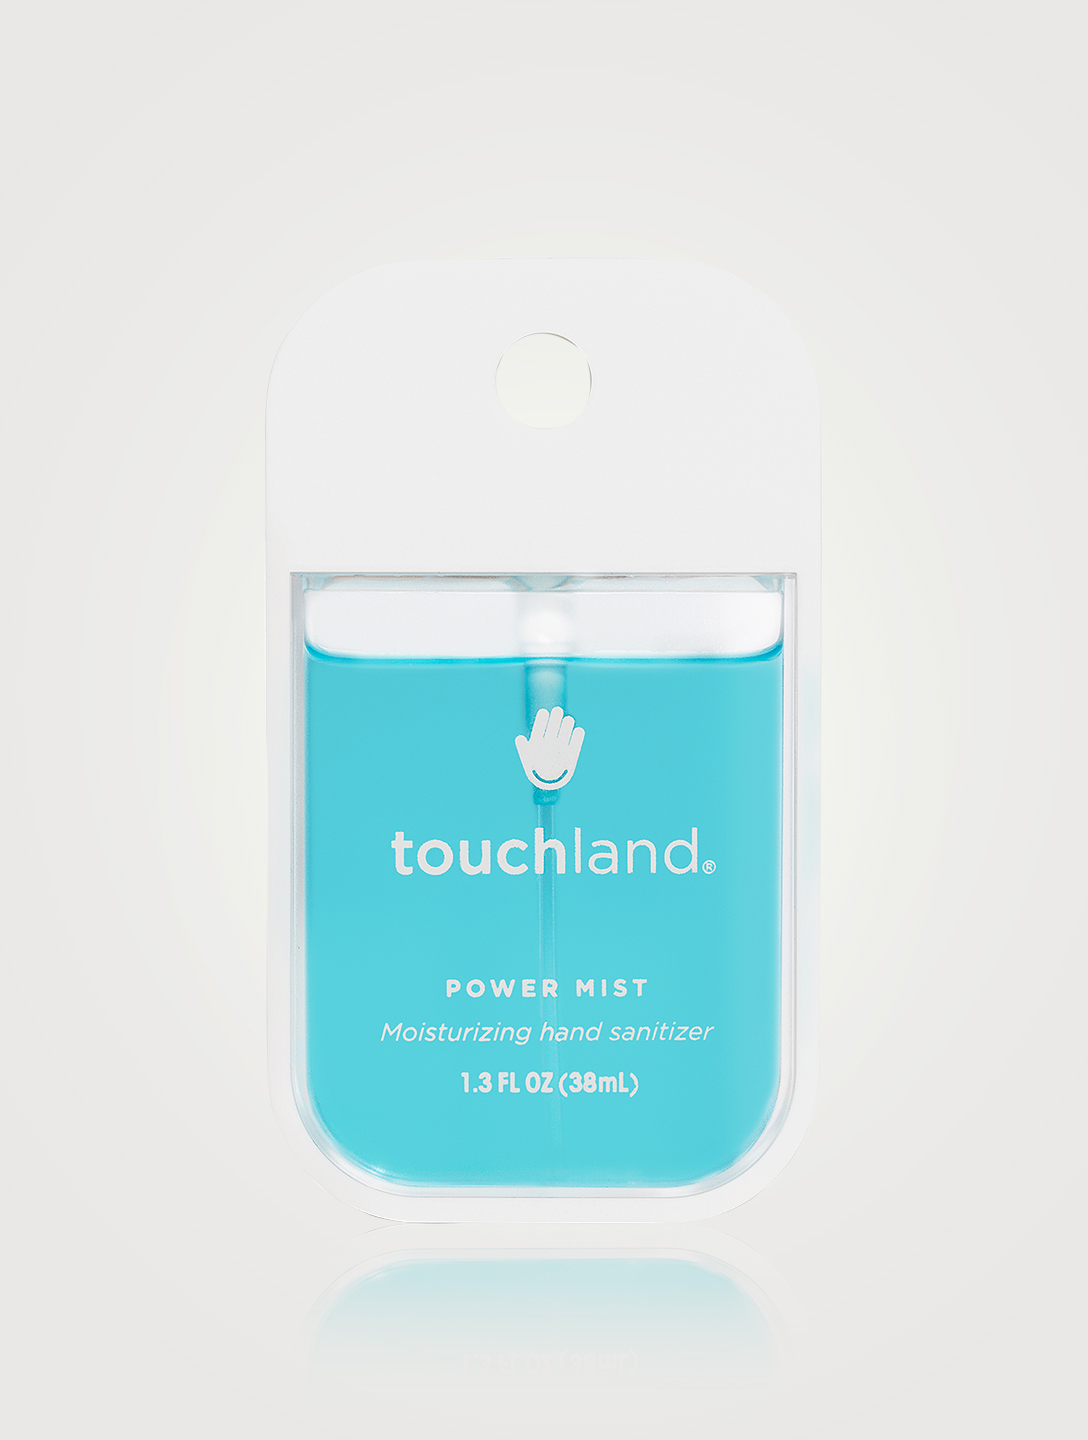 TOUCHLAND Power Mist Mint Moisturizing Hand Sanitizer Beauty Blue